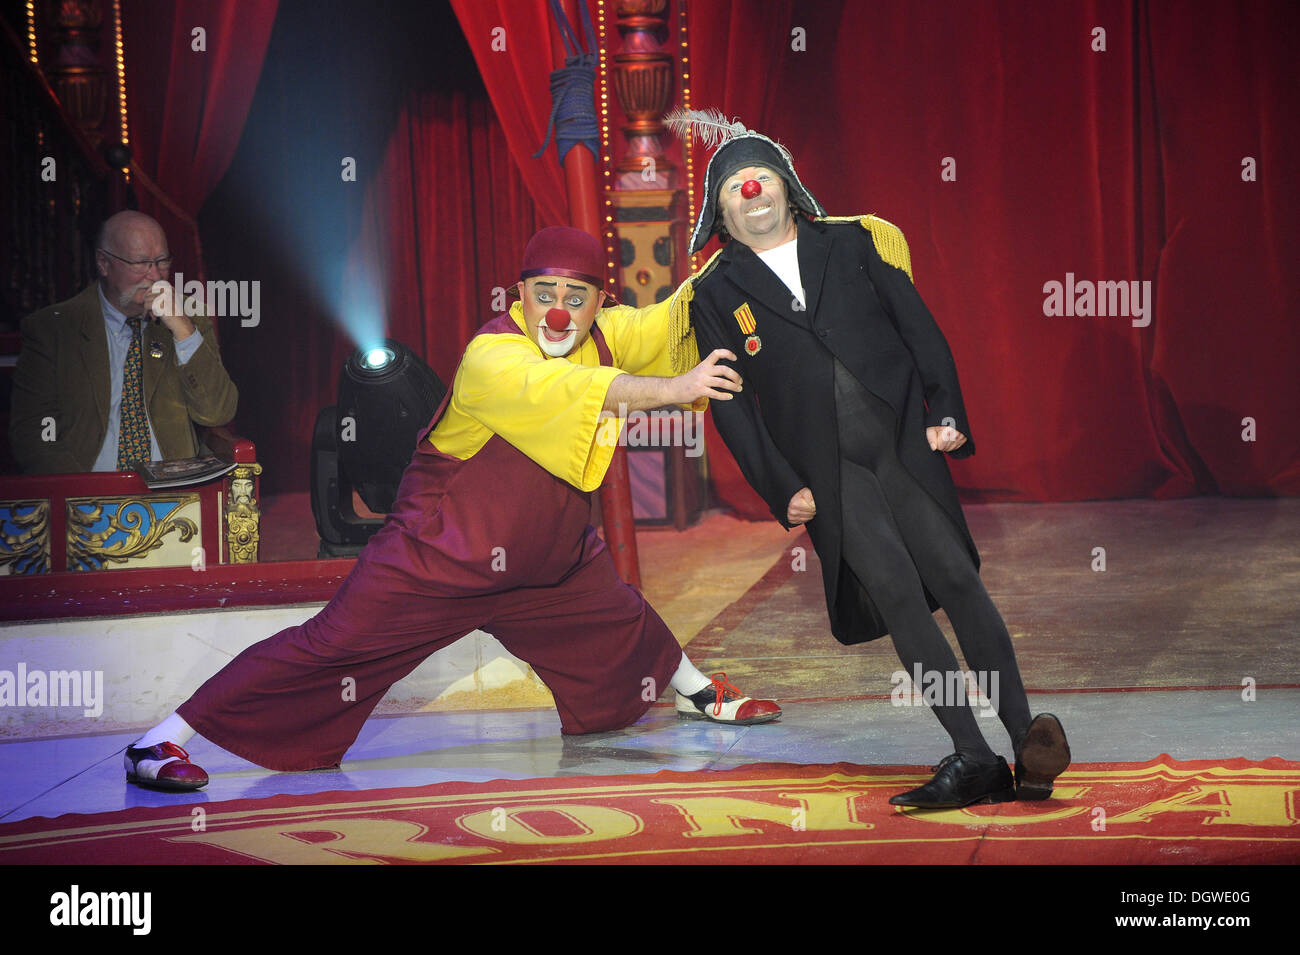 Munich, Germany. 25th Oct, 2013. The KGB clowns perform during the gala premiere of Circus Roncalli in Munich, Germany, 25 October 2013. The circus will performs its program 'Time is Honey' in Munich until 08 December 2013. Photo: URSULA DUEREN/dpa/Alamy Live News - Stock Image